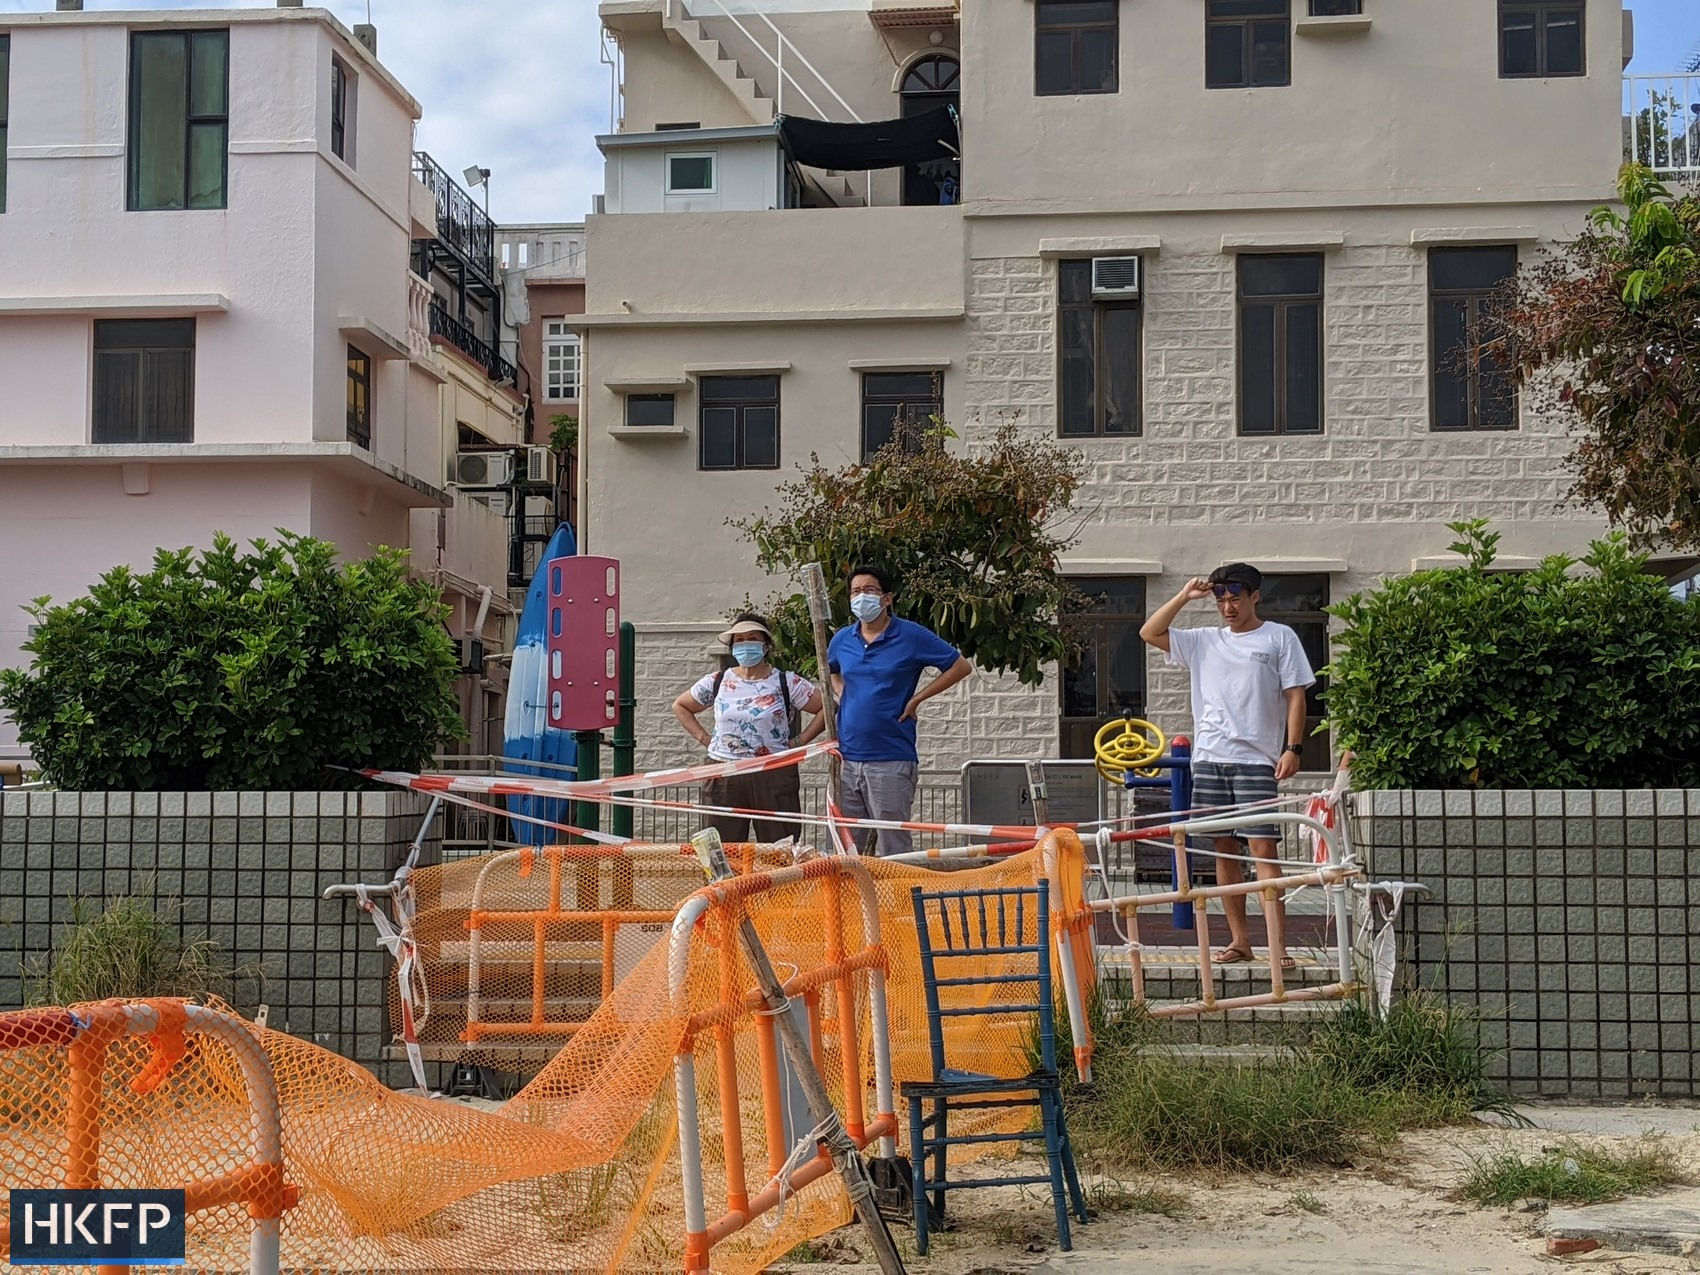 Shek O beach closure under covid